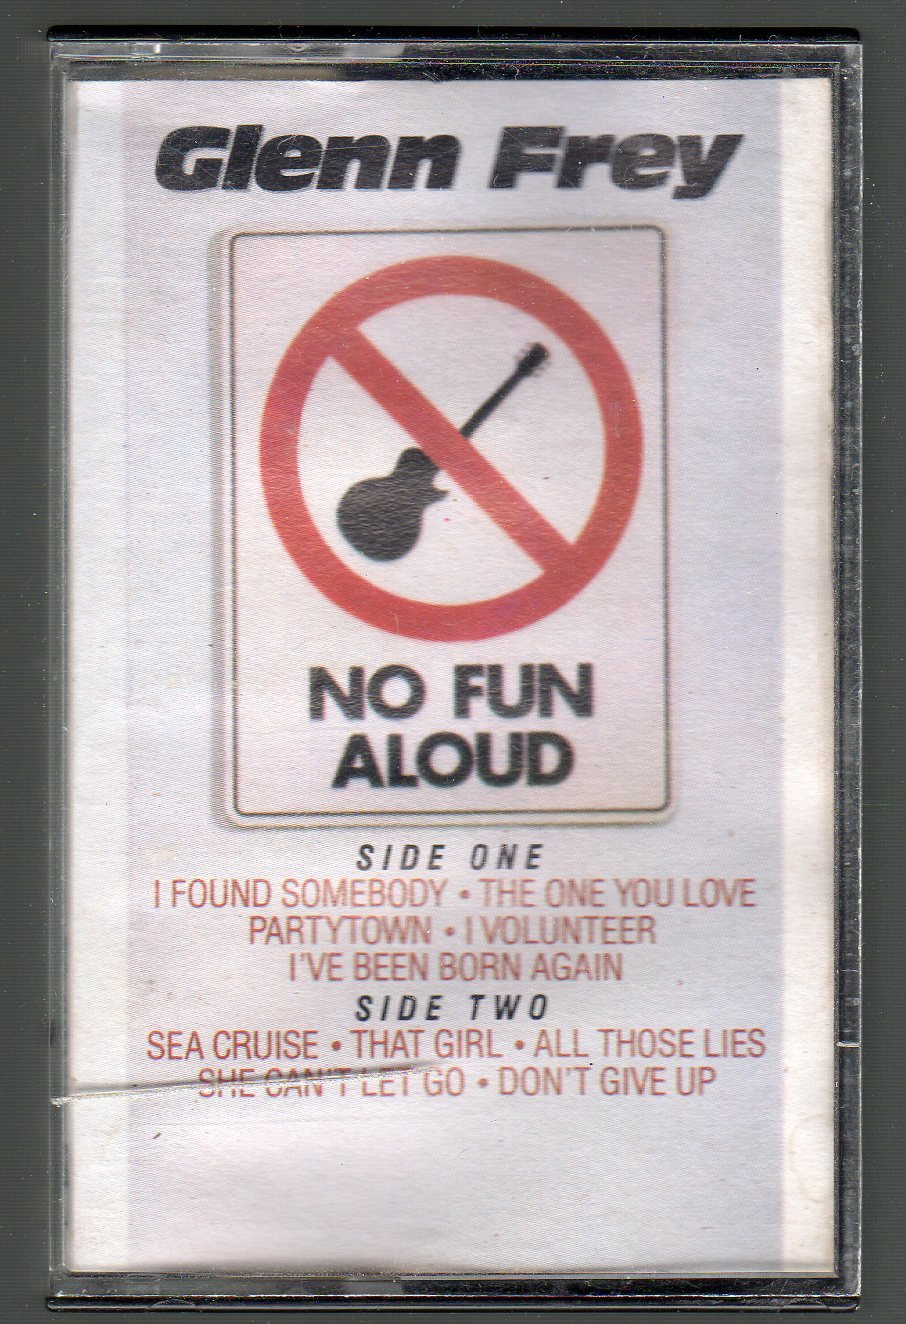 Glenn Frey - No Fun Aloud Cassette Tape